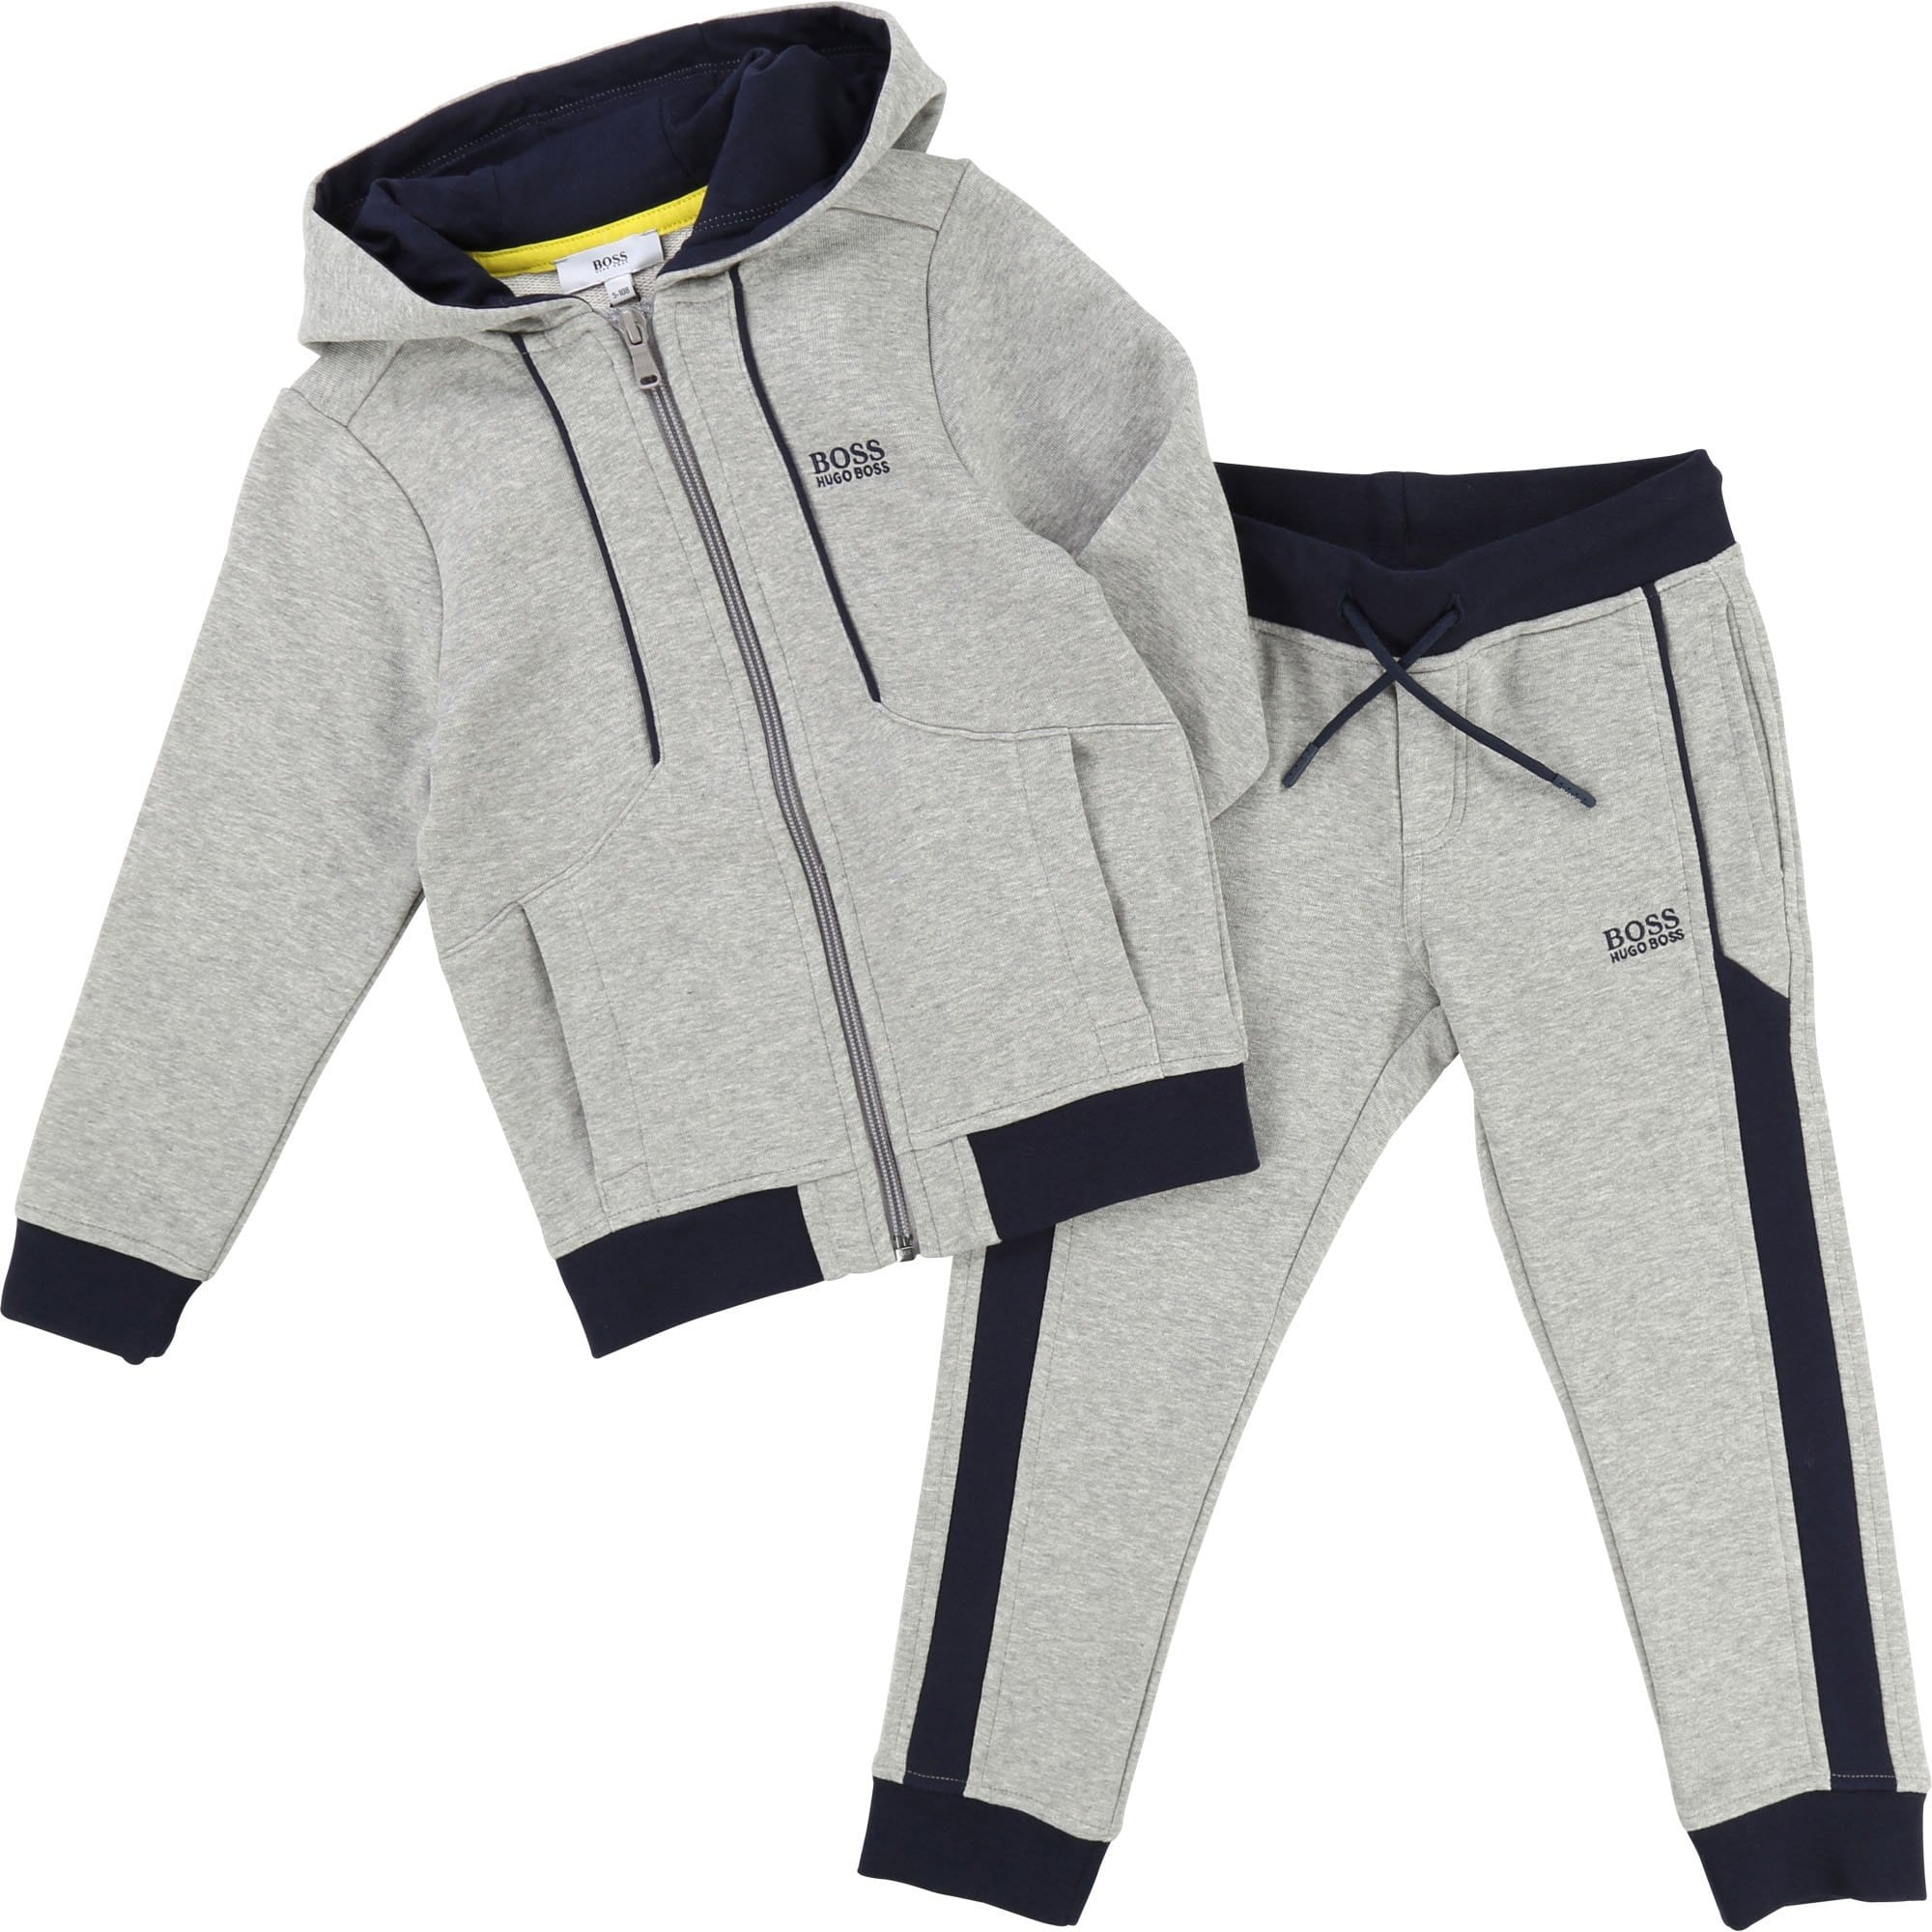 Hugo Boss Boys Cadet Tracksuit